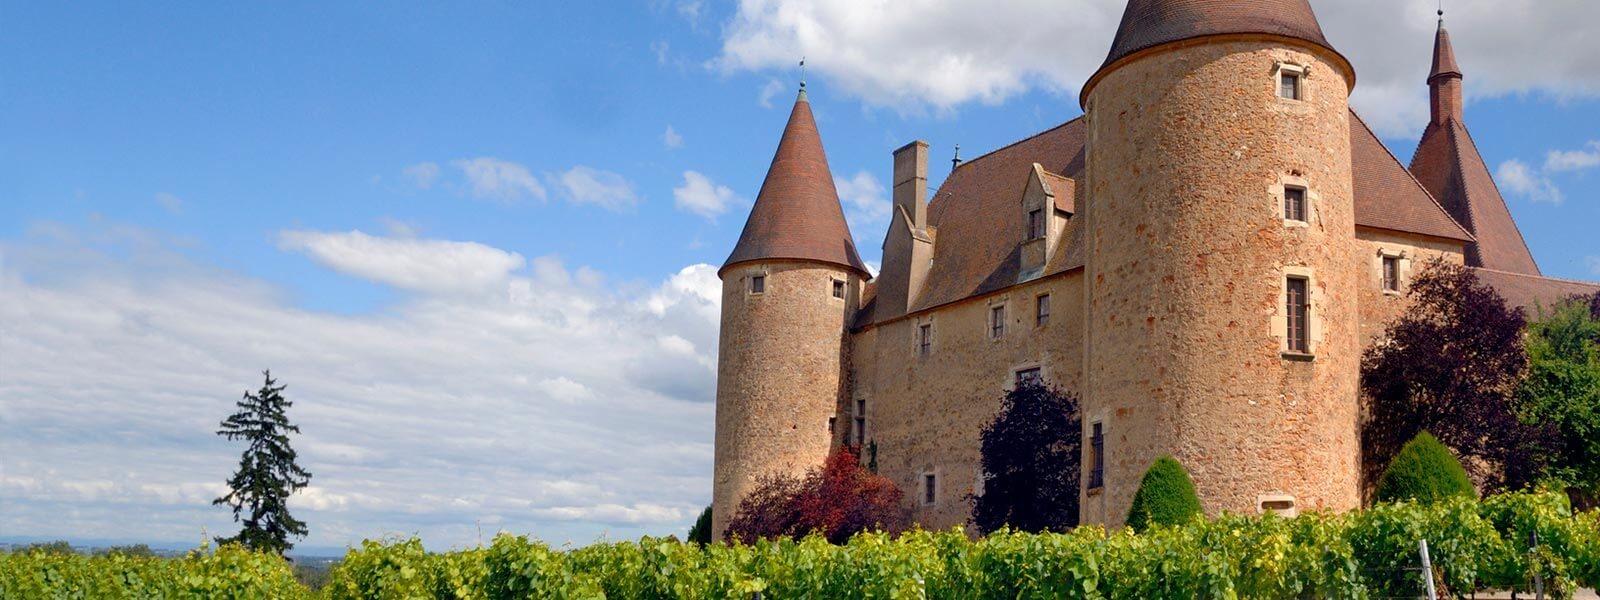 Kanpai Tourisme - Beaujolais Crus Wines & Castles - Afternoon